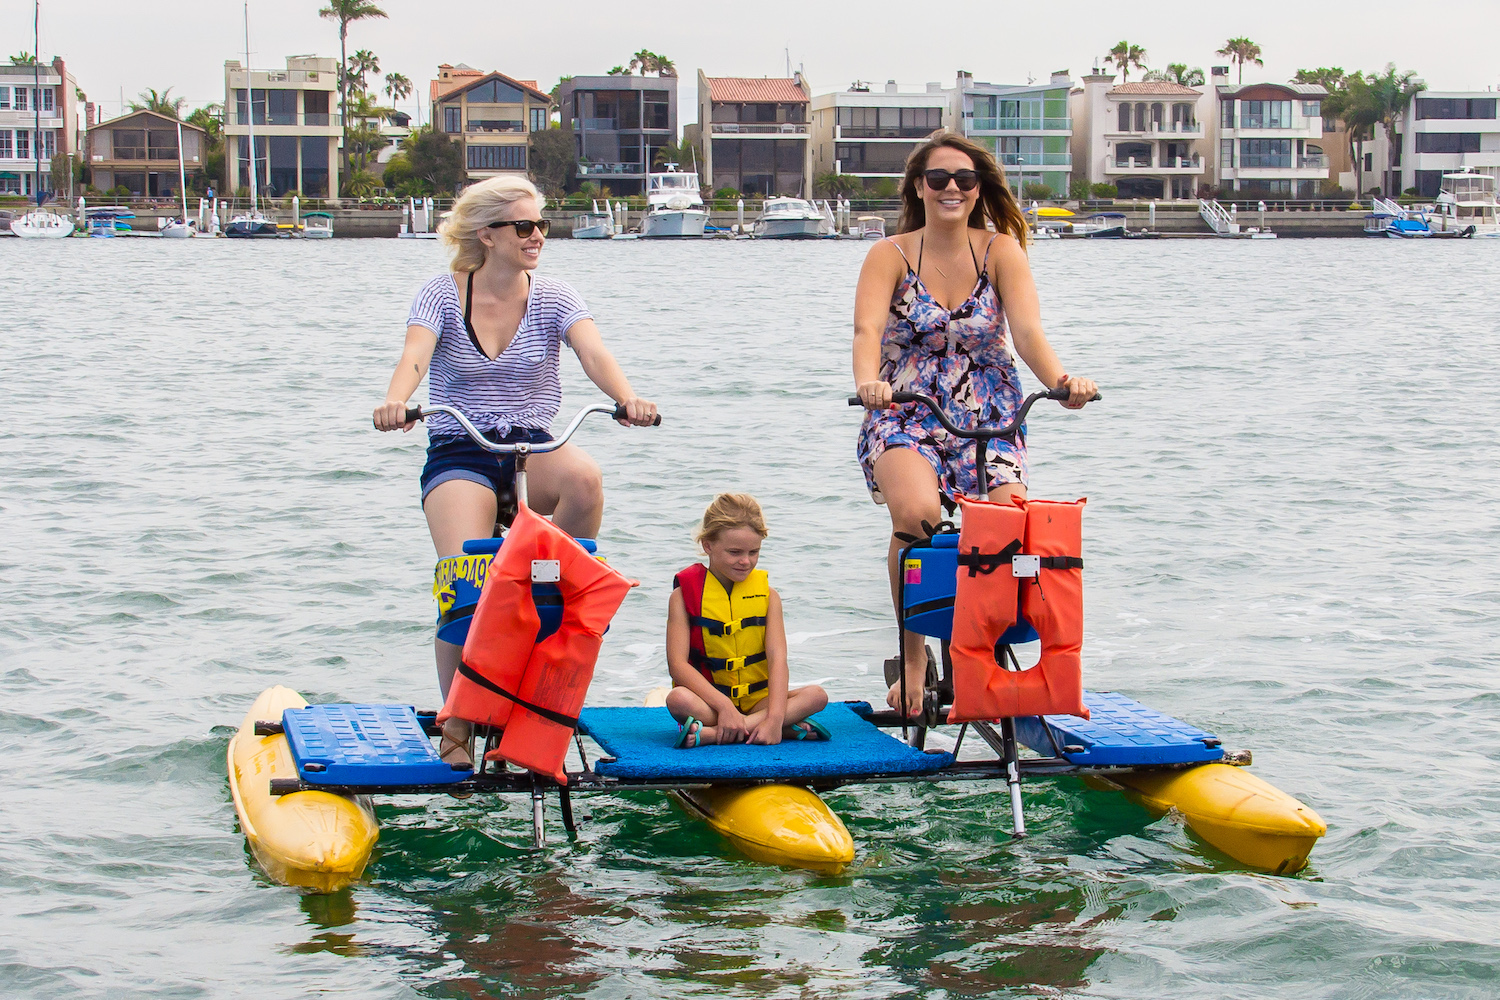 Watersport Activities in Newport CA